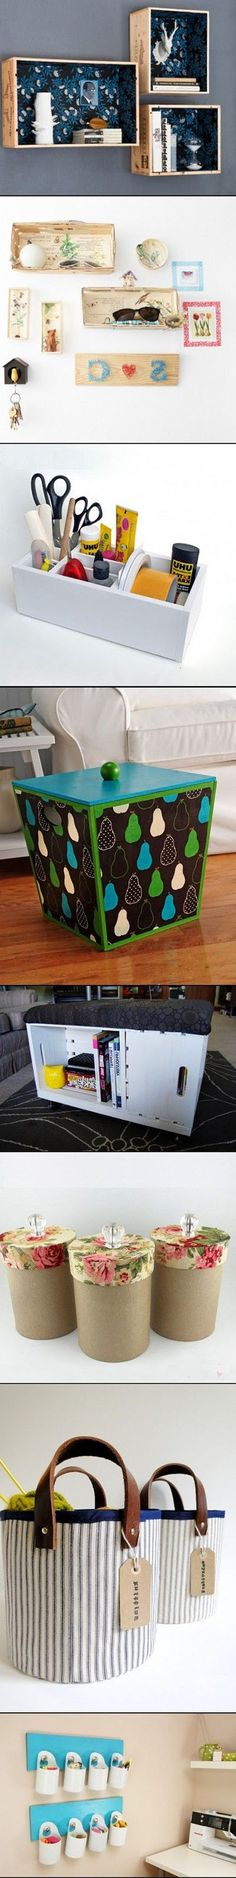 18  DIY Storage Furniture, Containers And Boxes7624e2512f | DIY